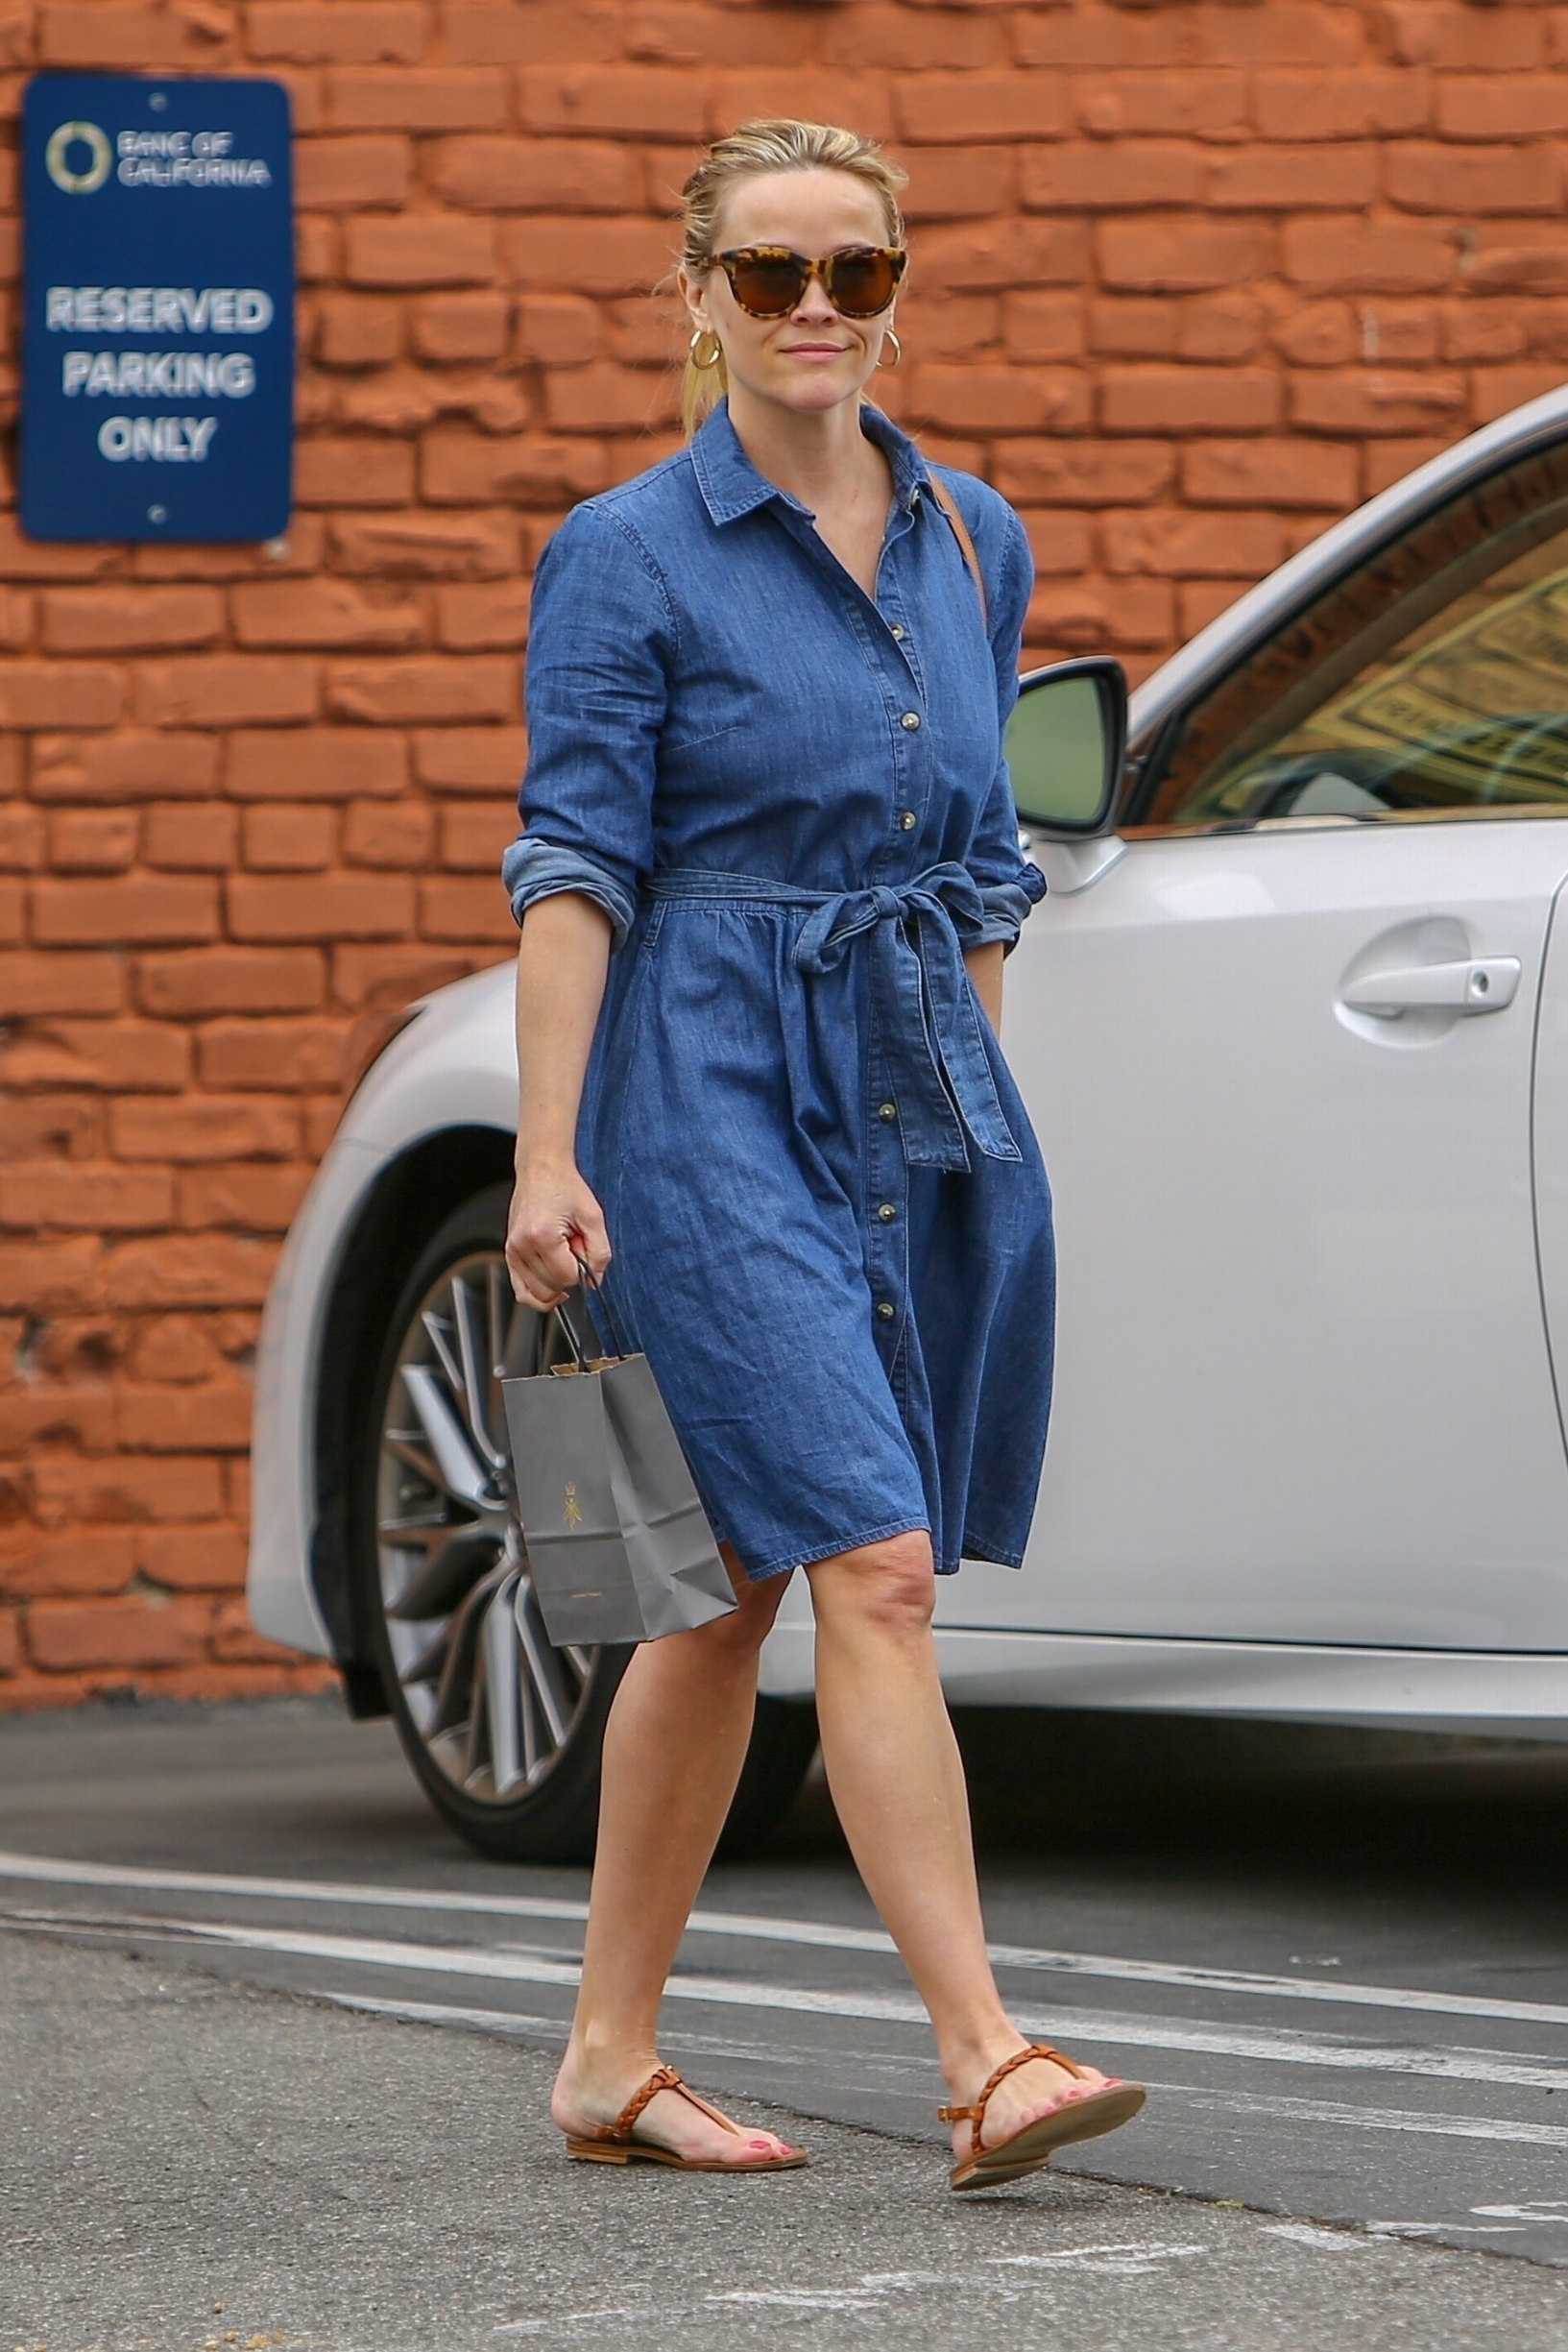 Santa Monica, CA  - *EXCLUSIVE* Reese Witherspoon looks refreshed after a three hour Sunday morning spa session at Queen Bee Salon & Spa in Santa Monica. Reese dons a denim dress and leather sandals for her solo trip to the spa. A noticeable blemish on Reese's cheek can be seen as she returns to her car with a smile.  Pictured: Reese Witherspoon    *UK Clients - Pictures Containing Children Please Pixelate Face Prior To Publication*, Image: 429478508, License: Rights-managed, Restrictions: , Model Release: no, Credit line: BACKGRID / Backgrid USA / Profimedia